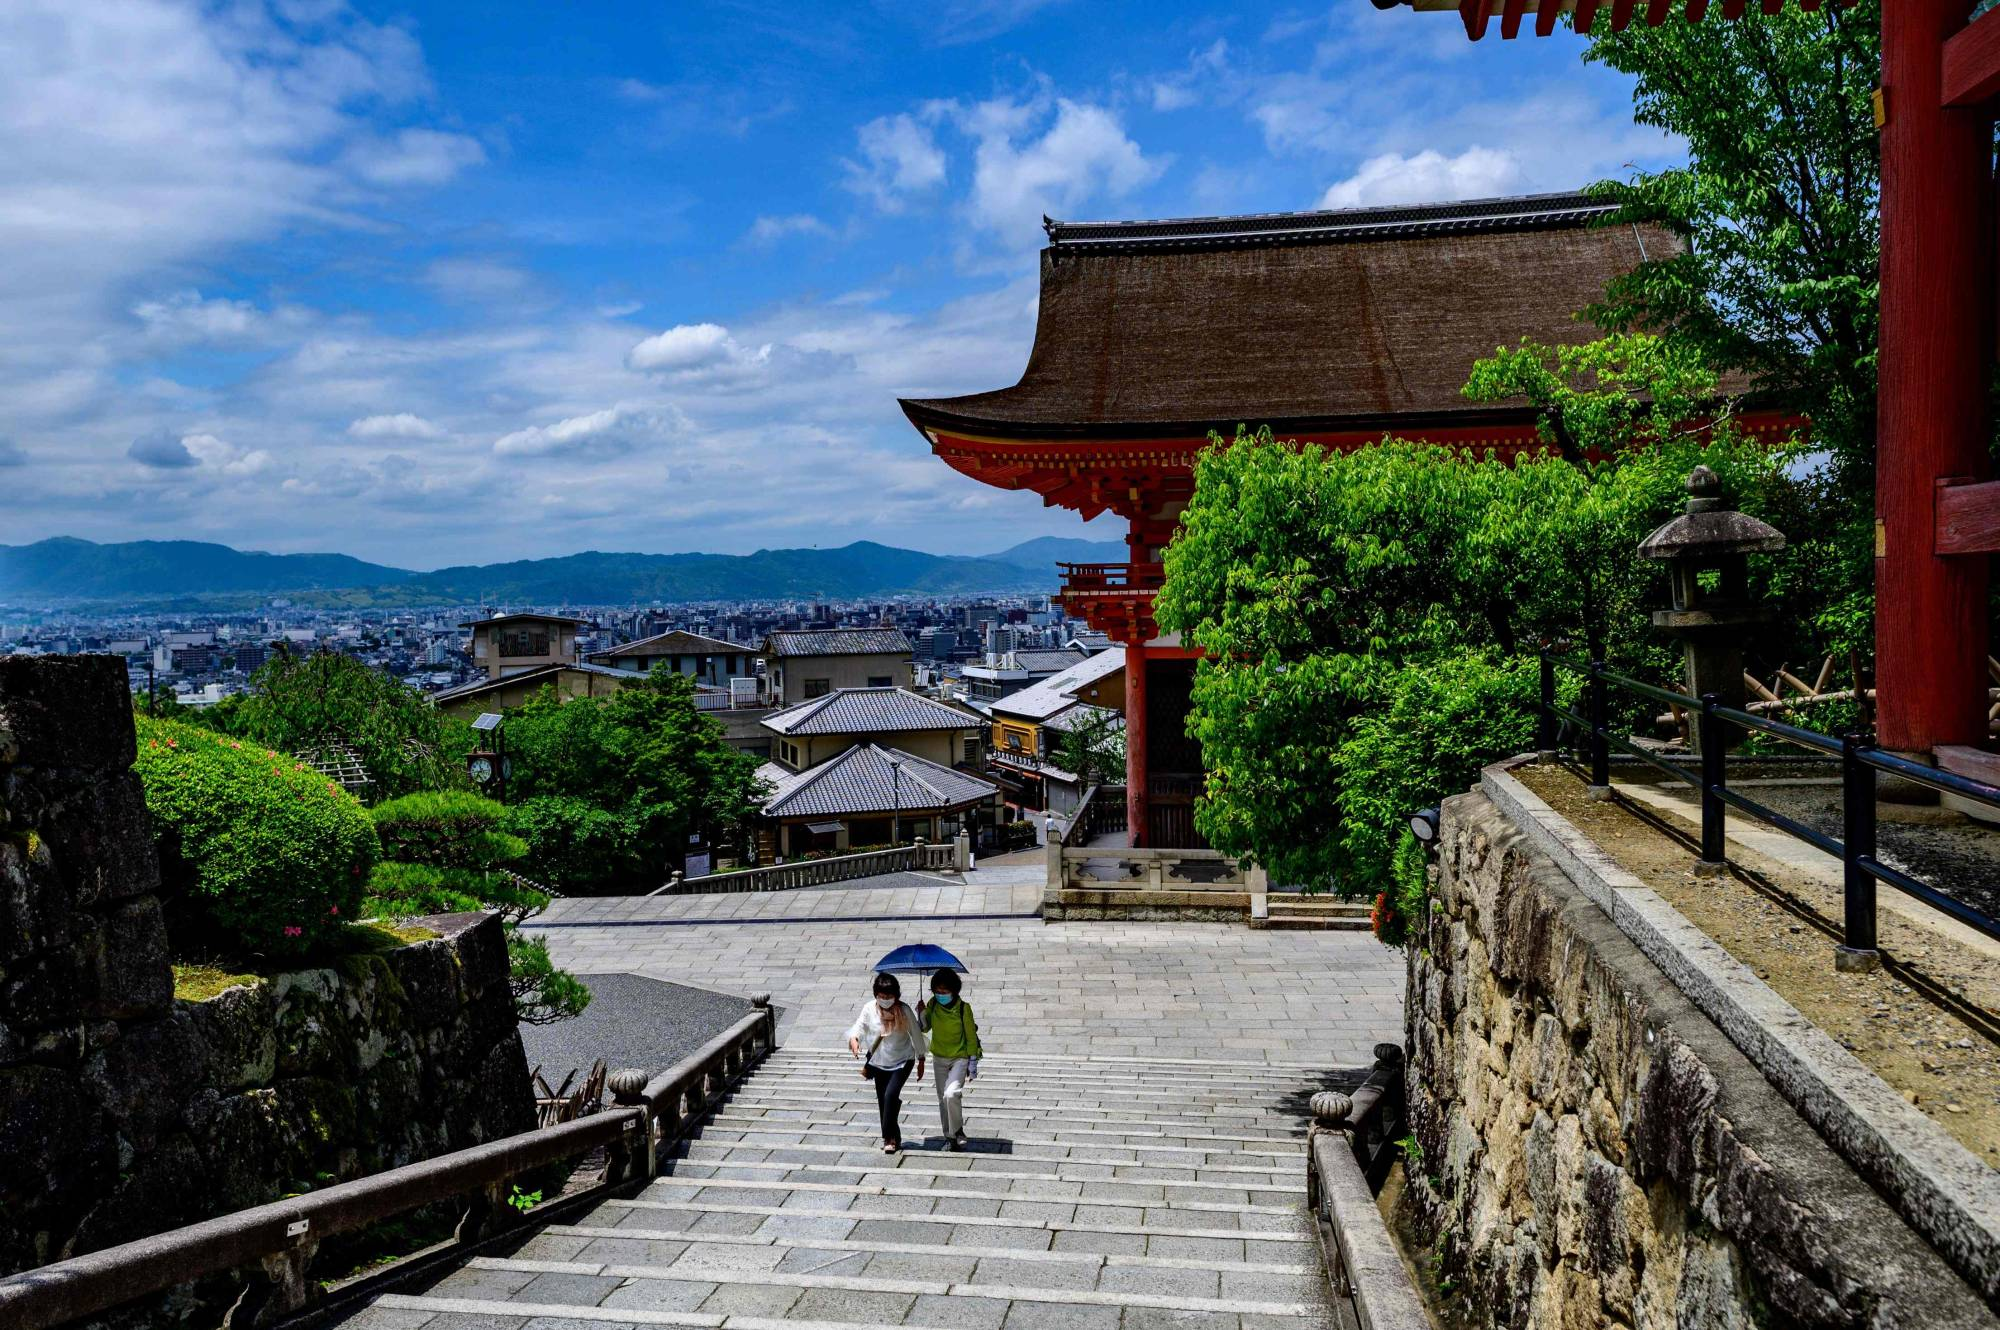 Visitors walk on the grounds of the normally busy Kiyomizu Temple, a UNESCO World Heritage structure set in the hills around Kyoto.   AFP-JIJI